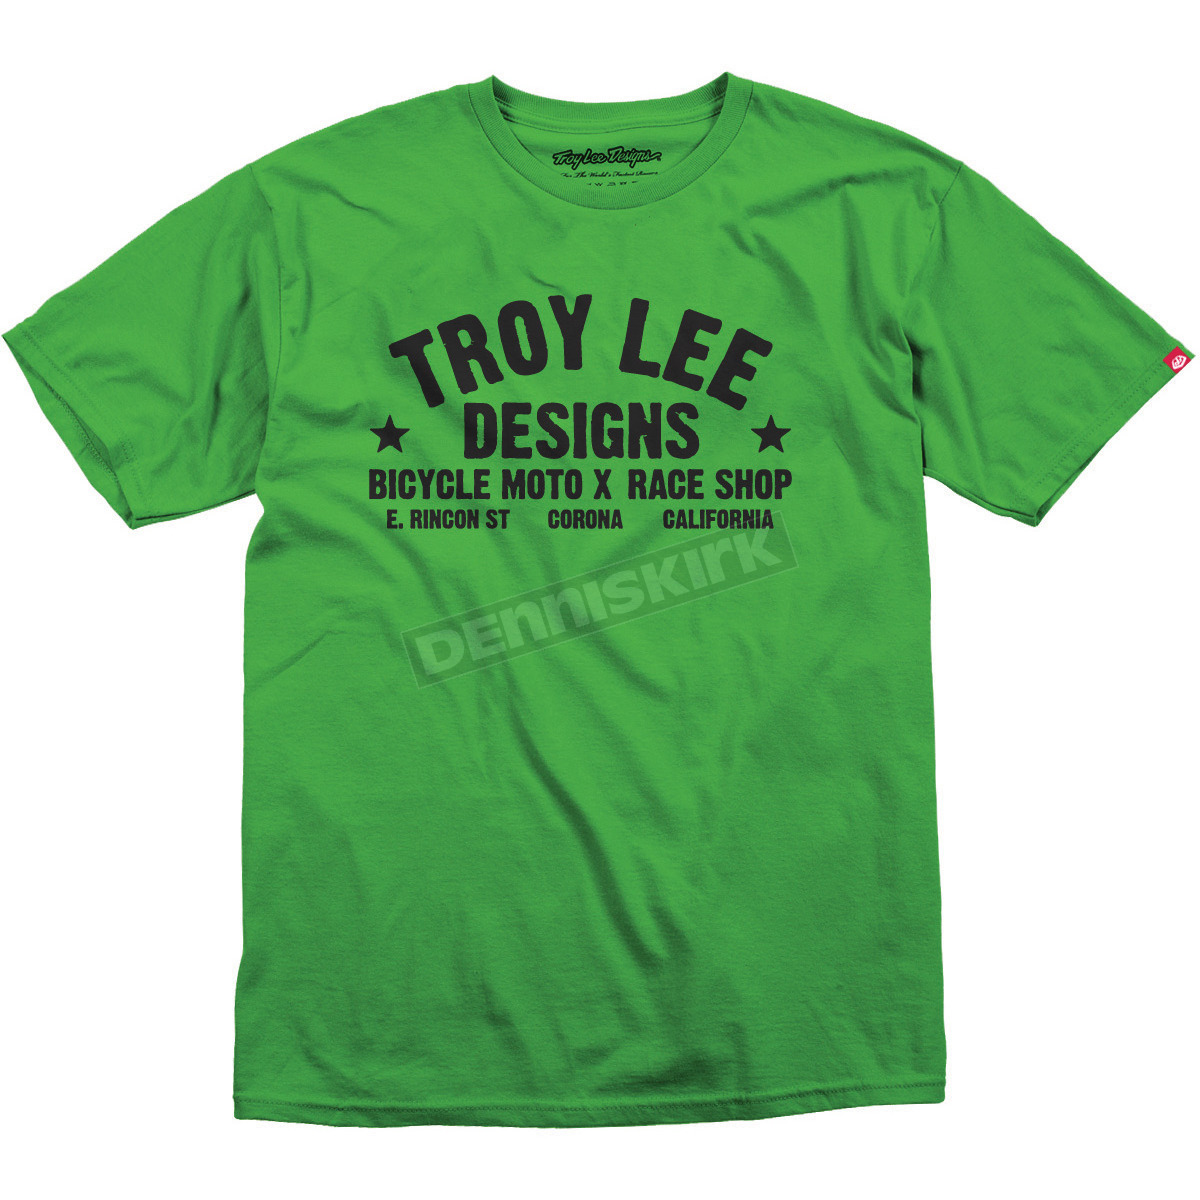 Troy lee designs lime green race shop t shirt 1632 0712 for Bike and cycle shoppe shirt